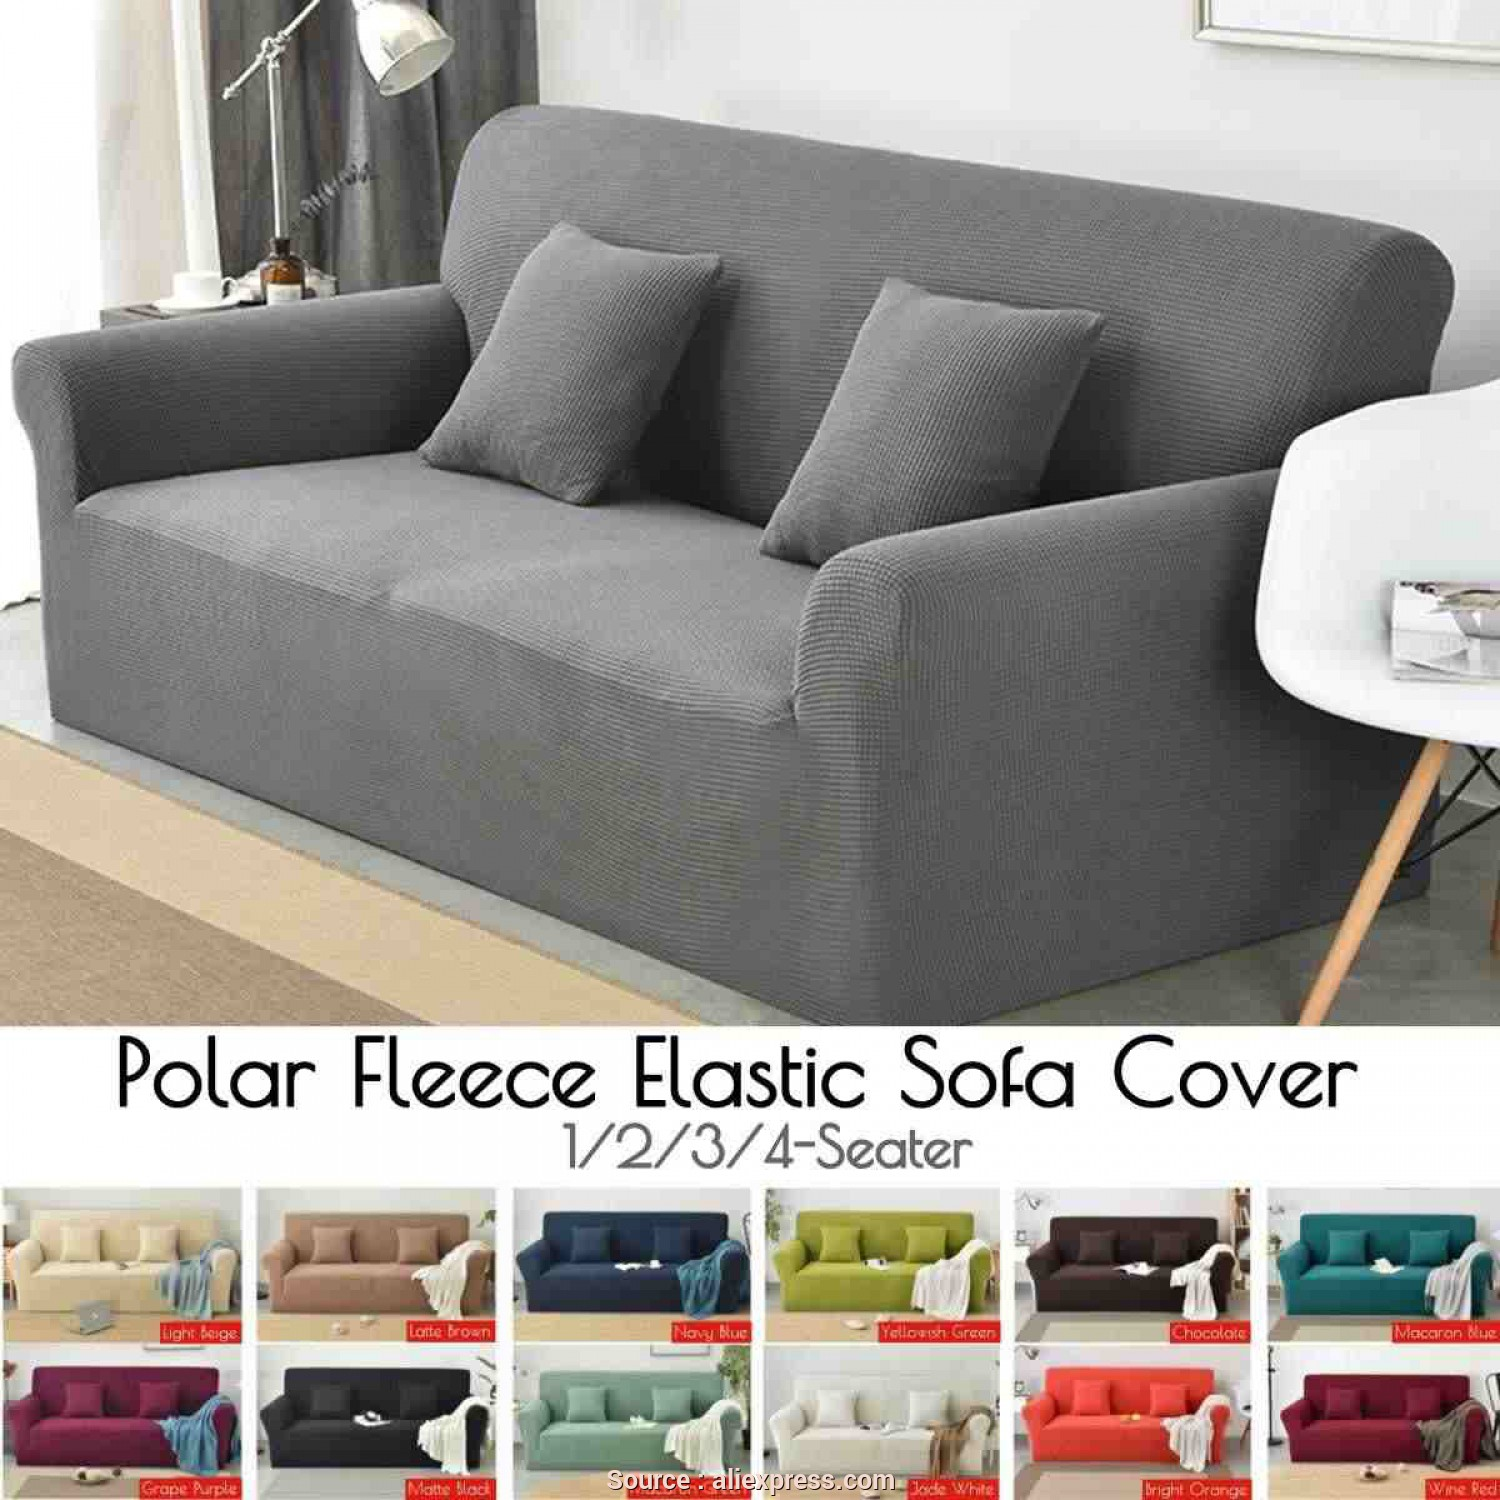 Copridivano Sofa Saver, Elegante 2019, Winter Thicken Spandex Polar Fleece Super Elastic Stretch Sofa Cover Slipcover Couch Living Room 1/2/3/4 Seater Solid